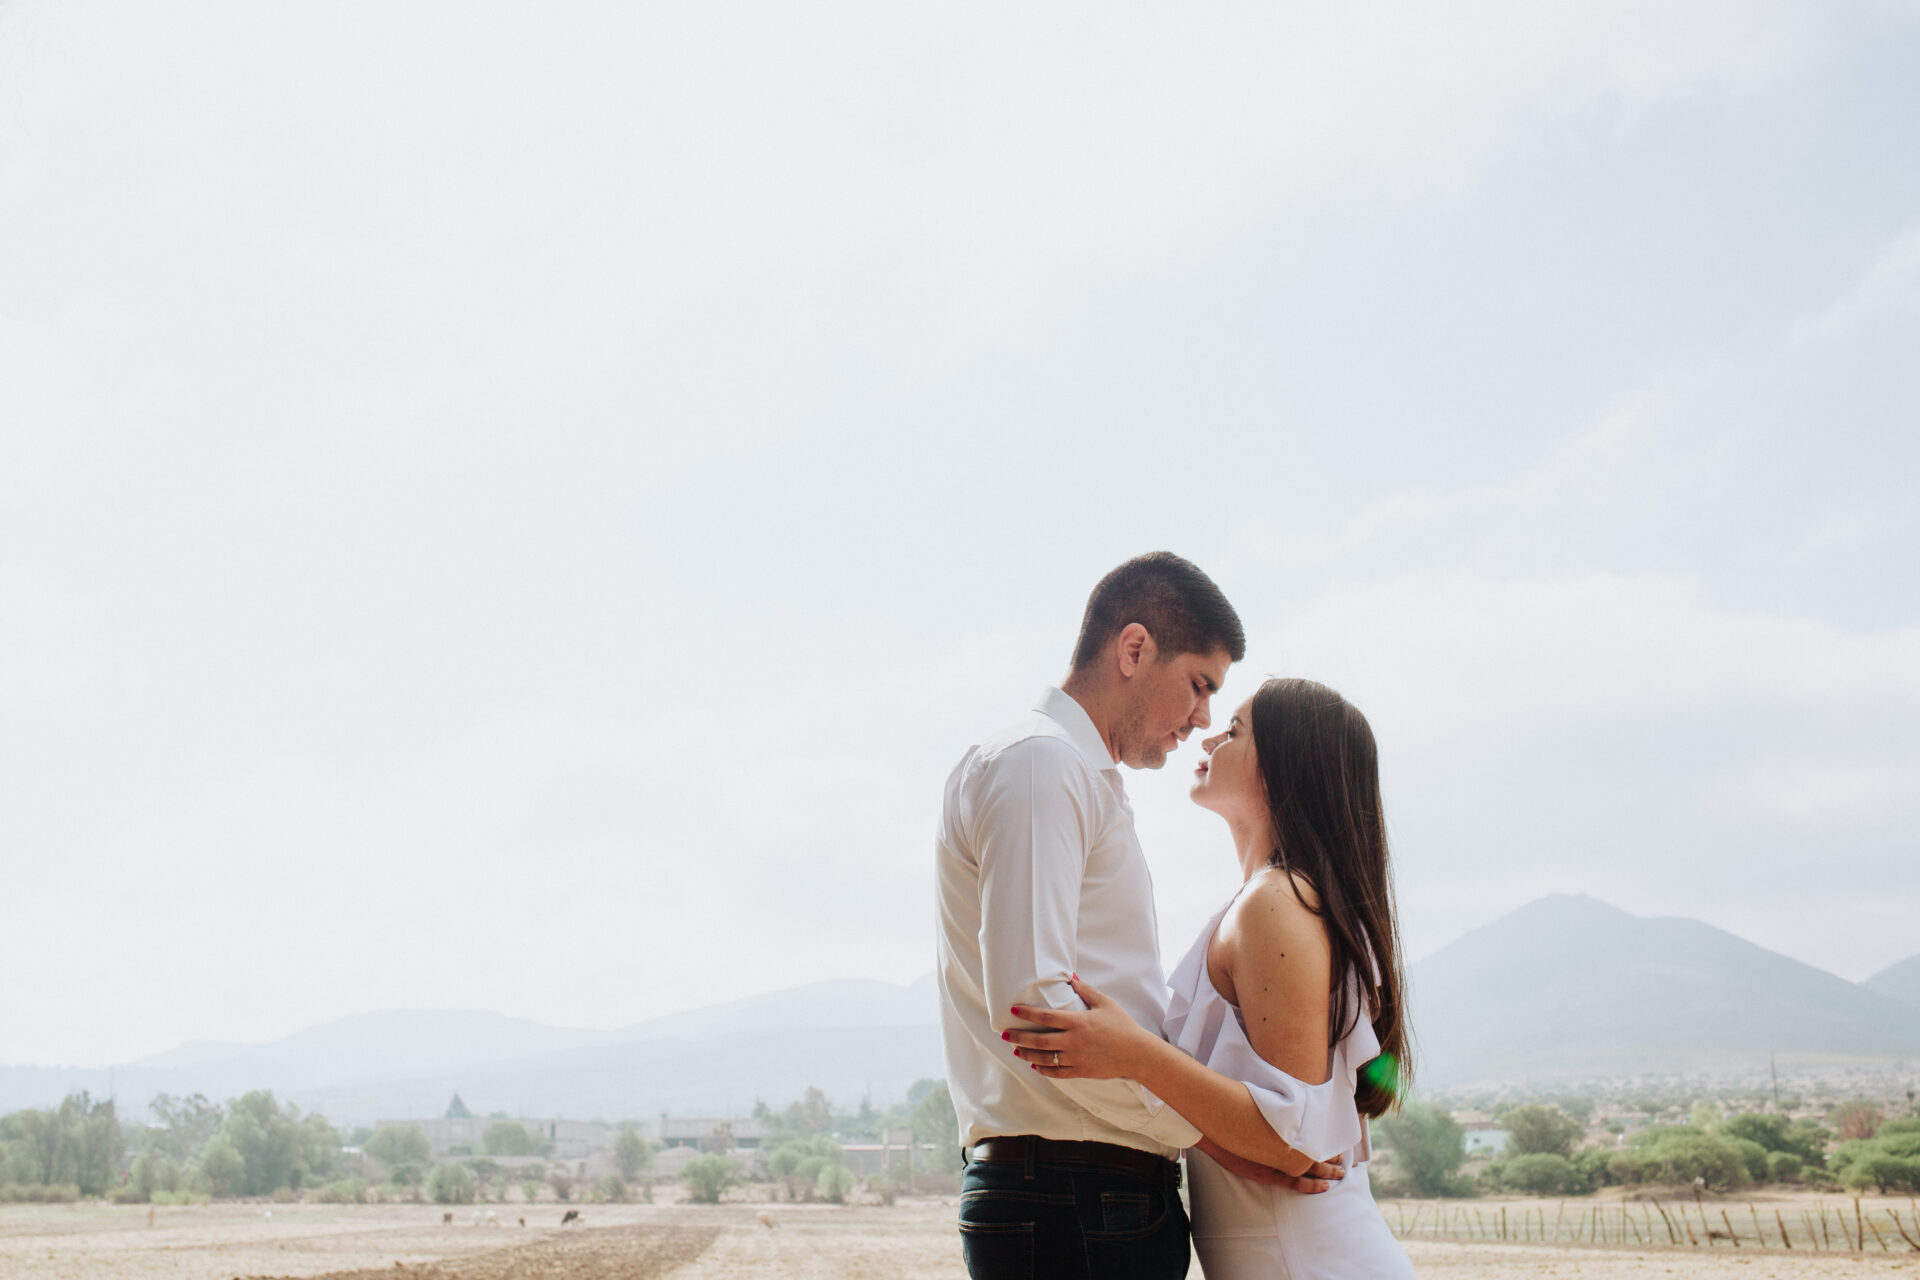 javier_noriega_fotografo_bodas_save_the_date_preboda_zacatecas_wedding_photographer16